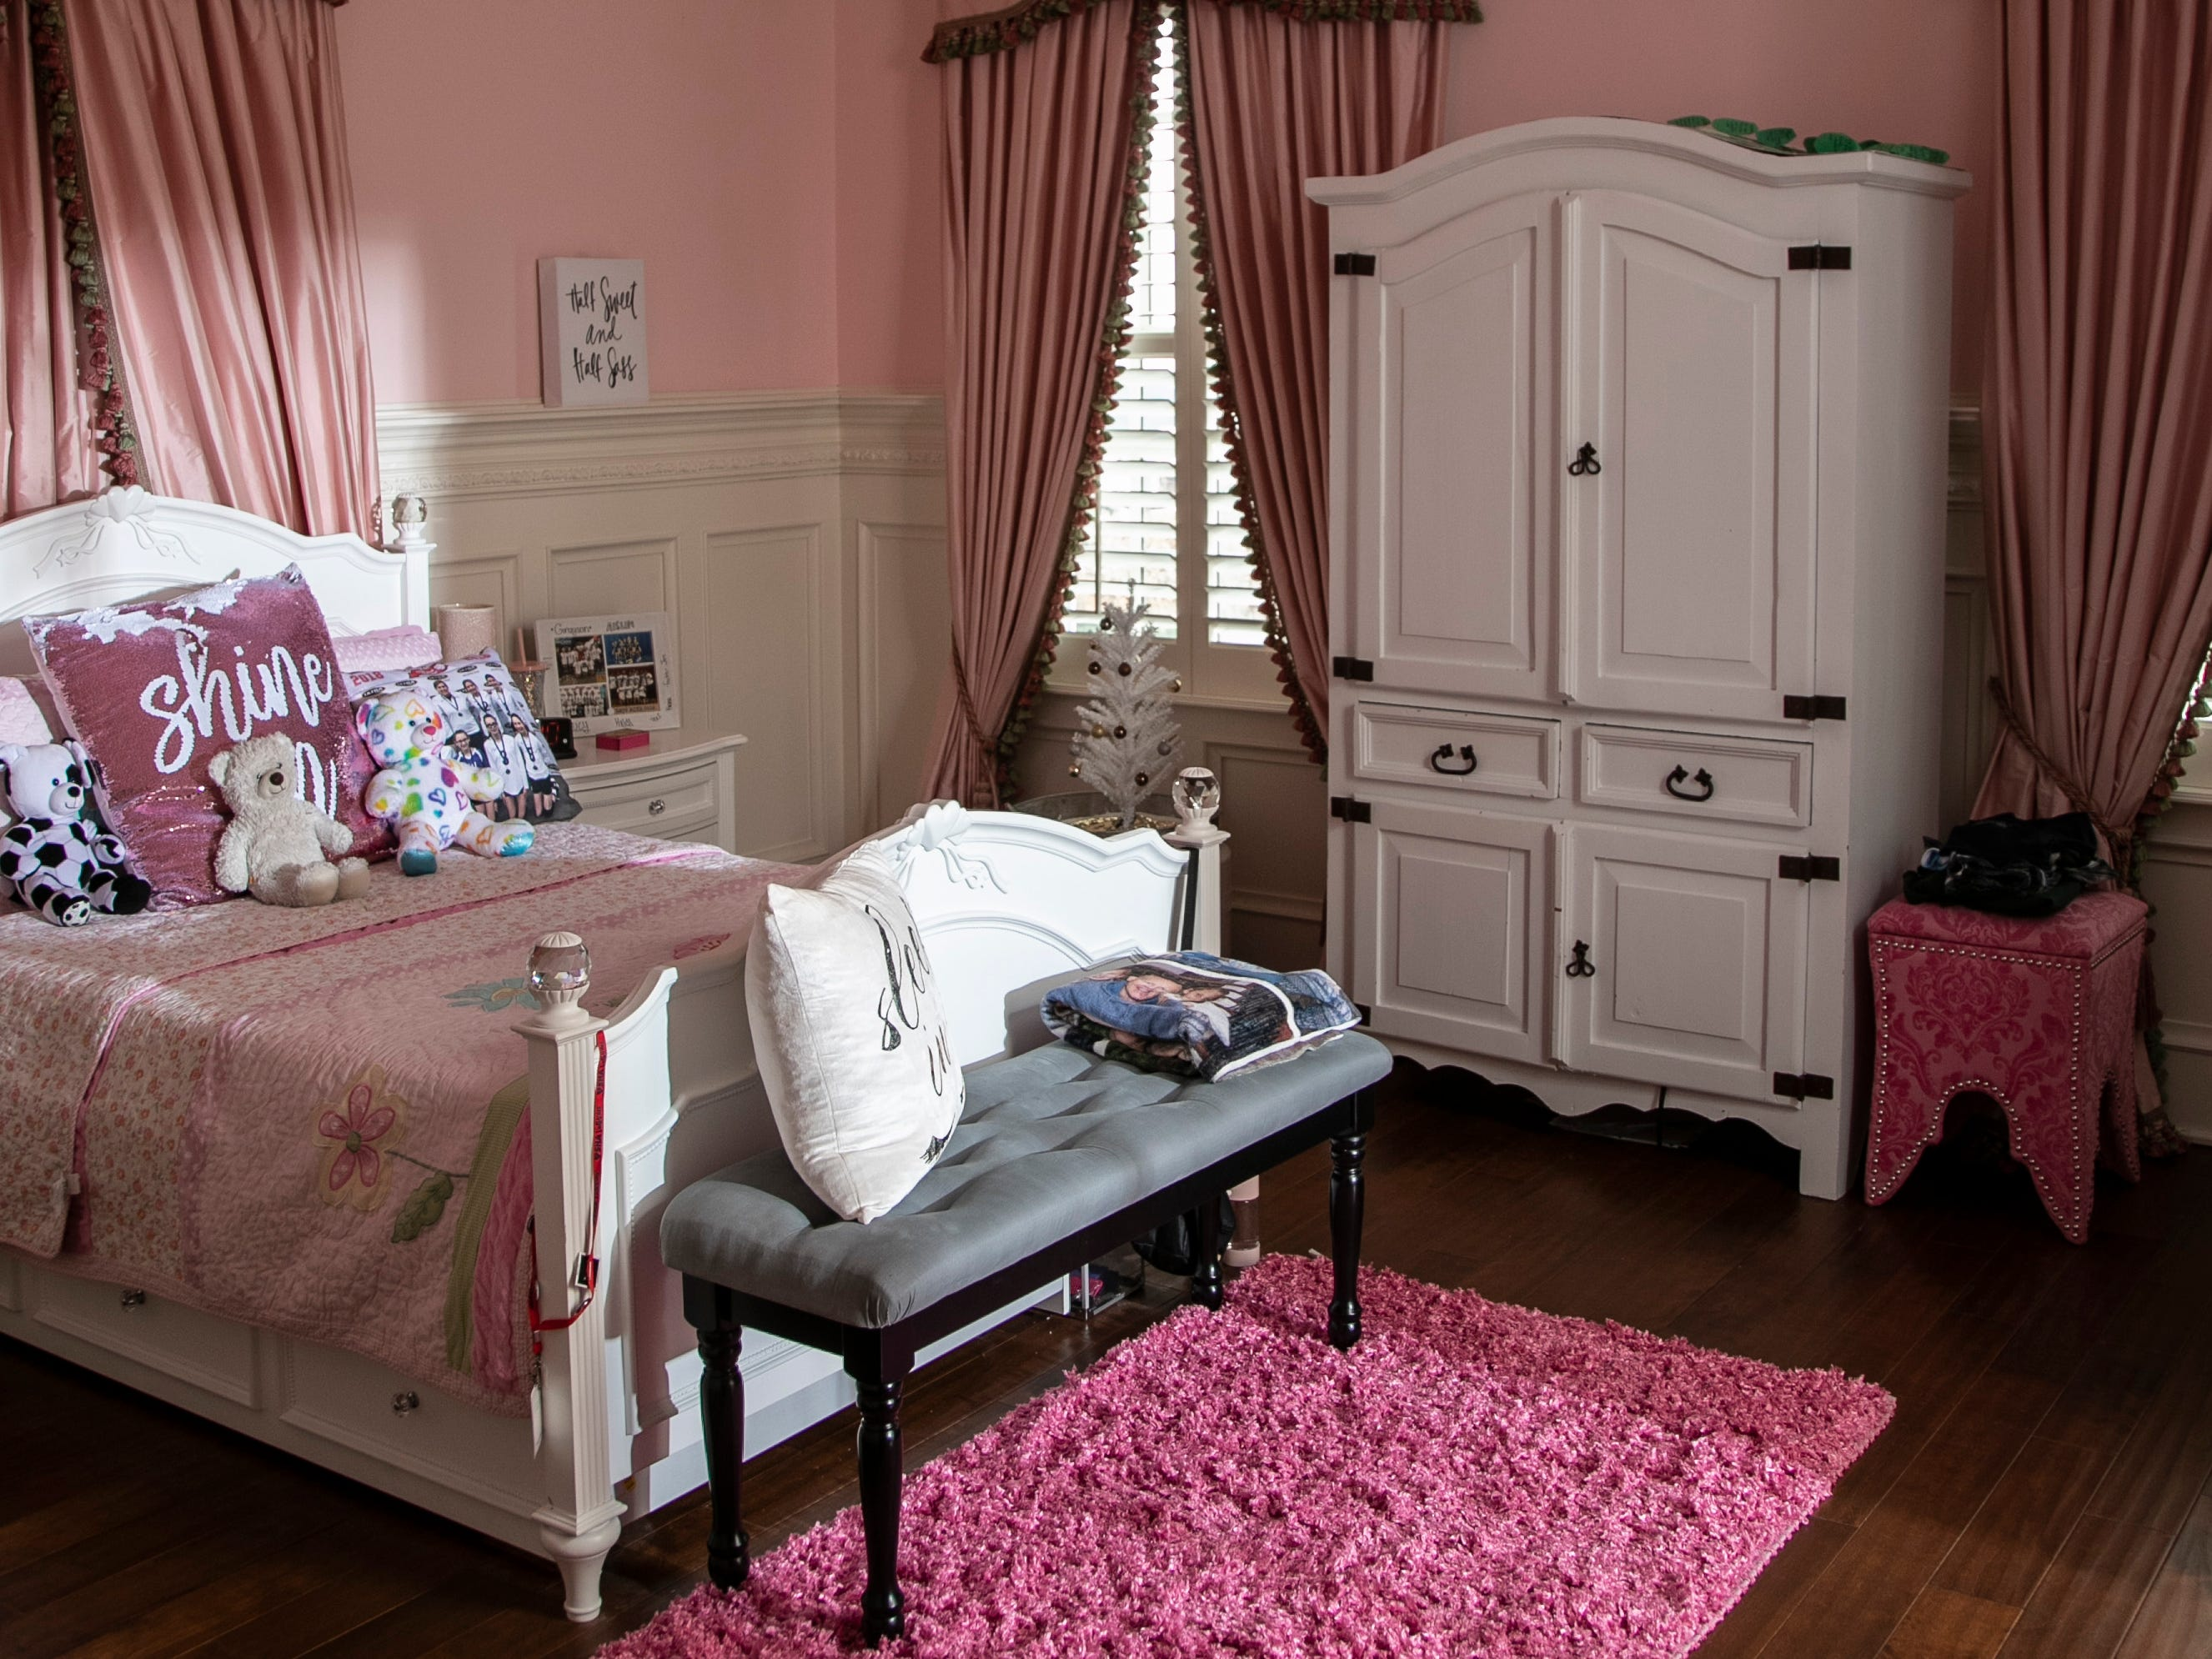 The bedroom for Hailee Mack has pink walls.